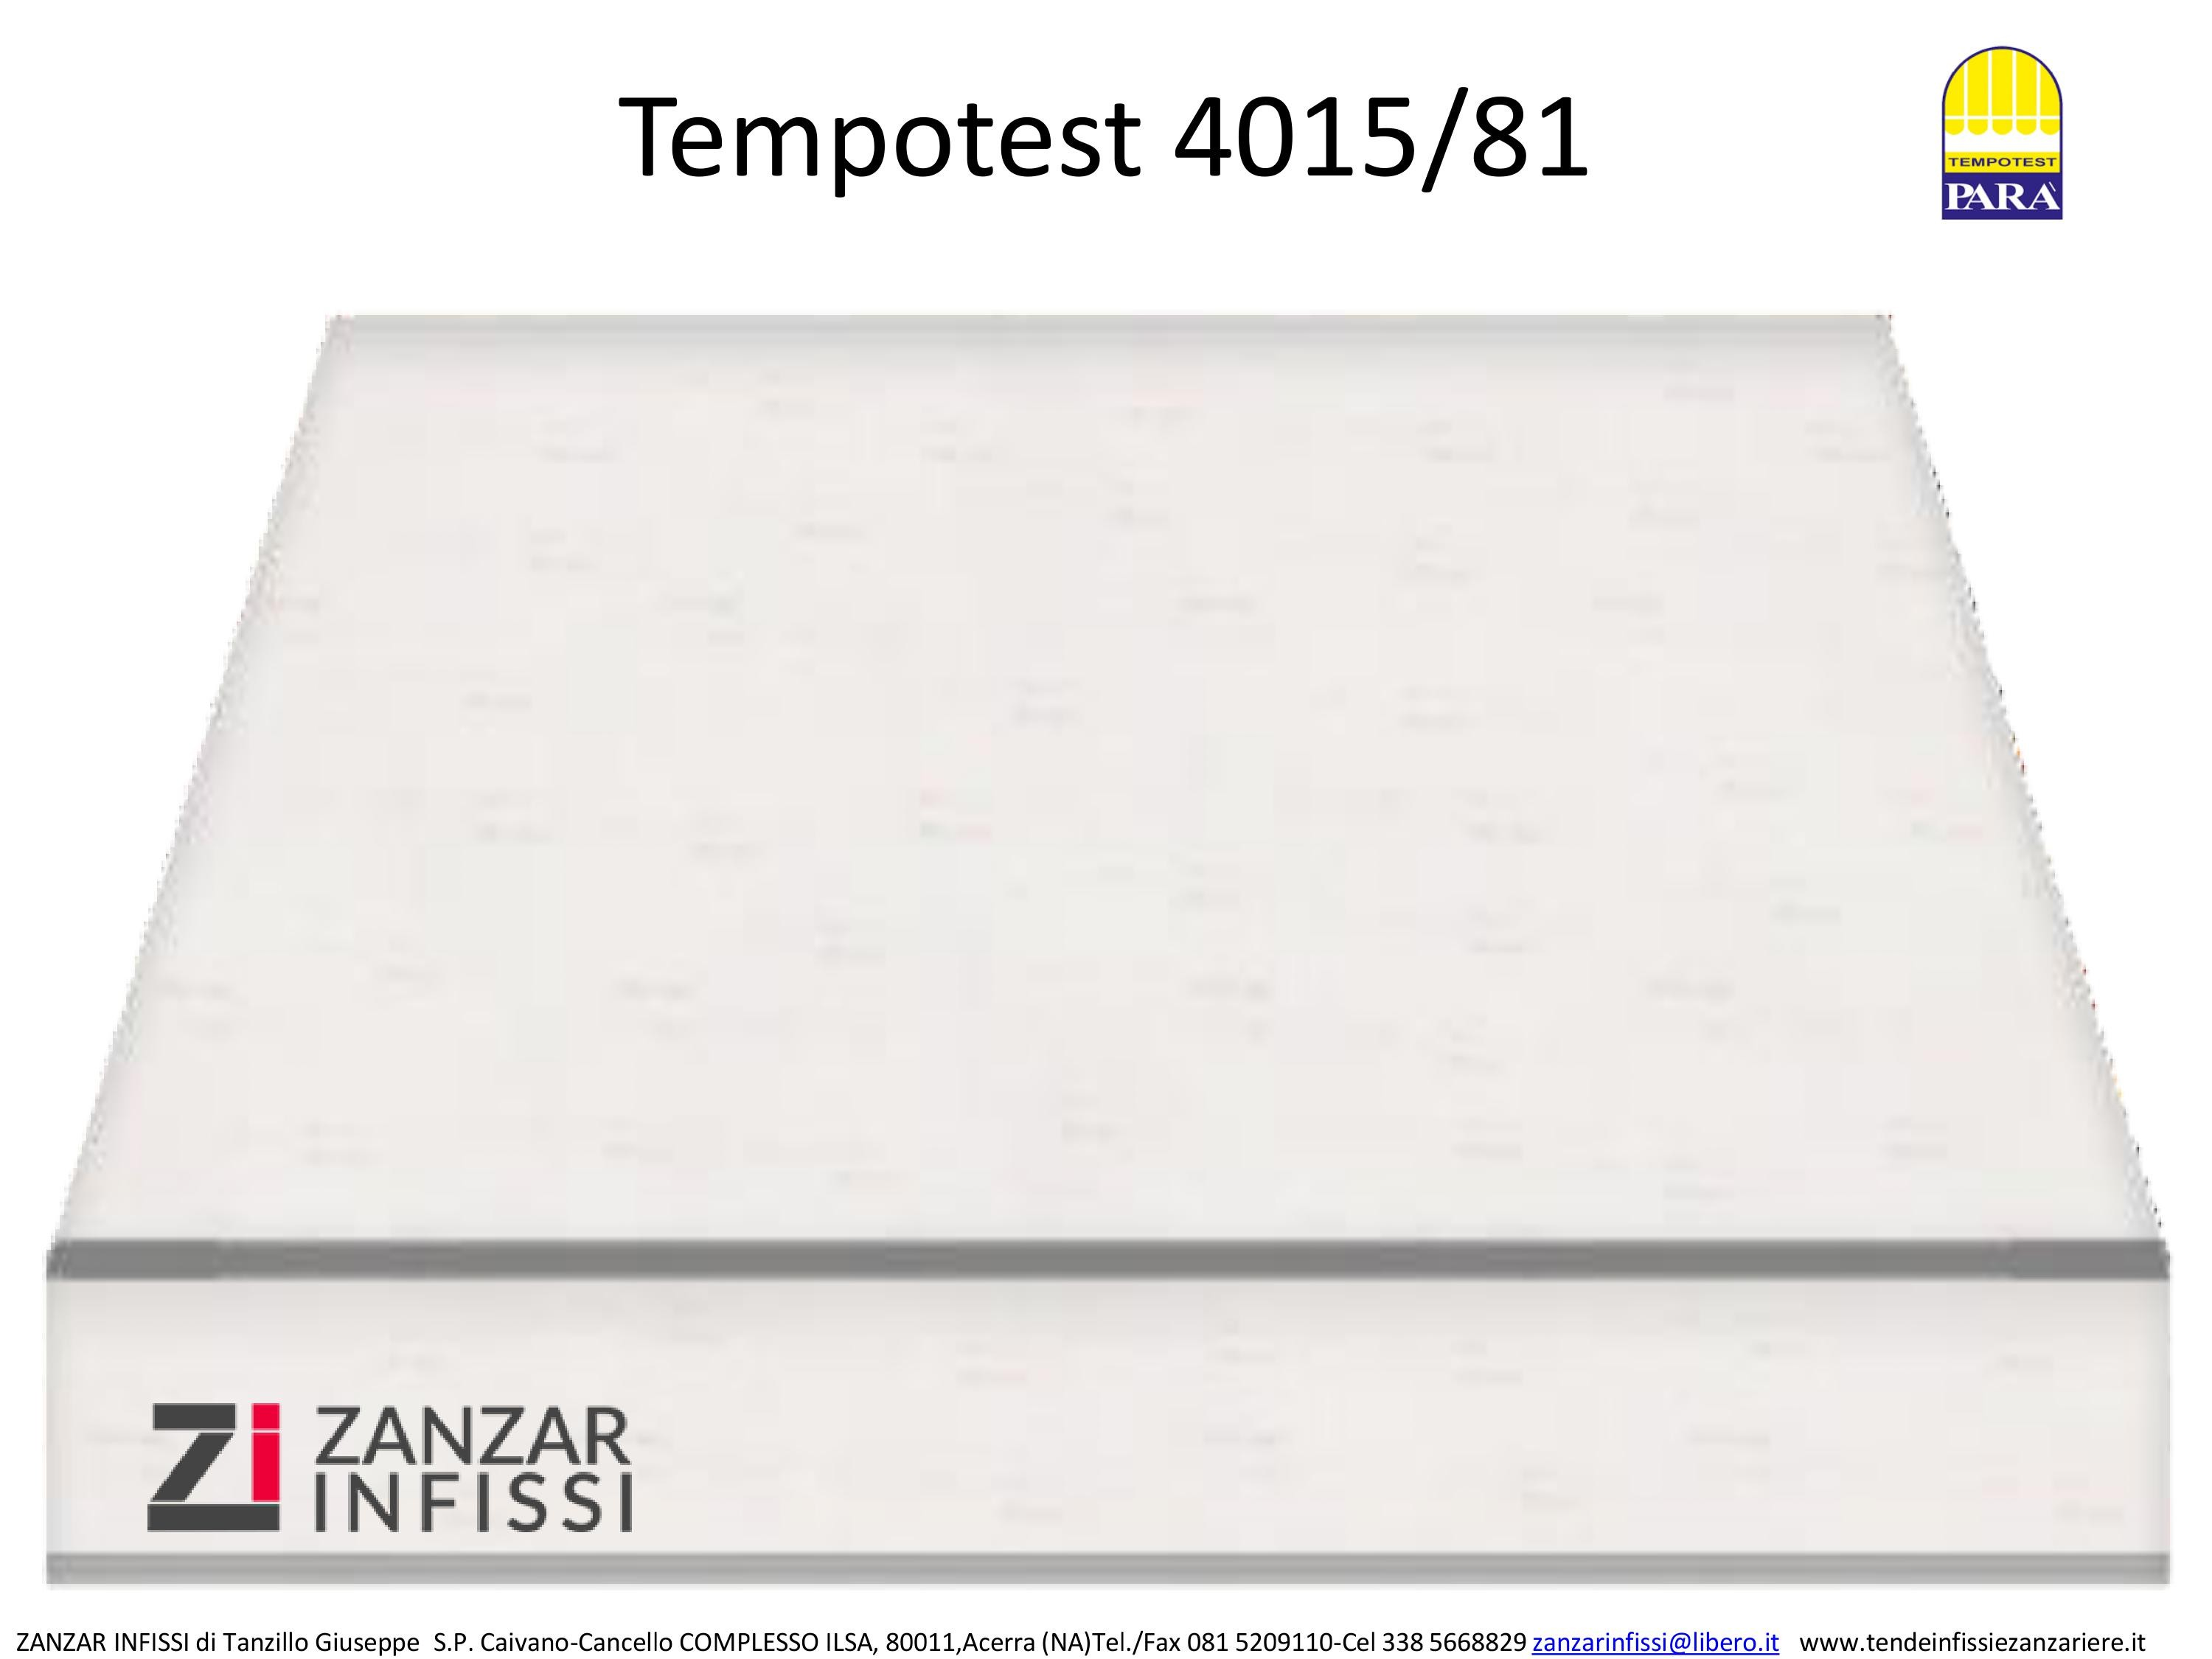 Tempotest 4015/81